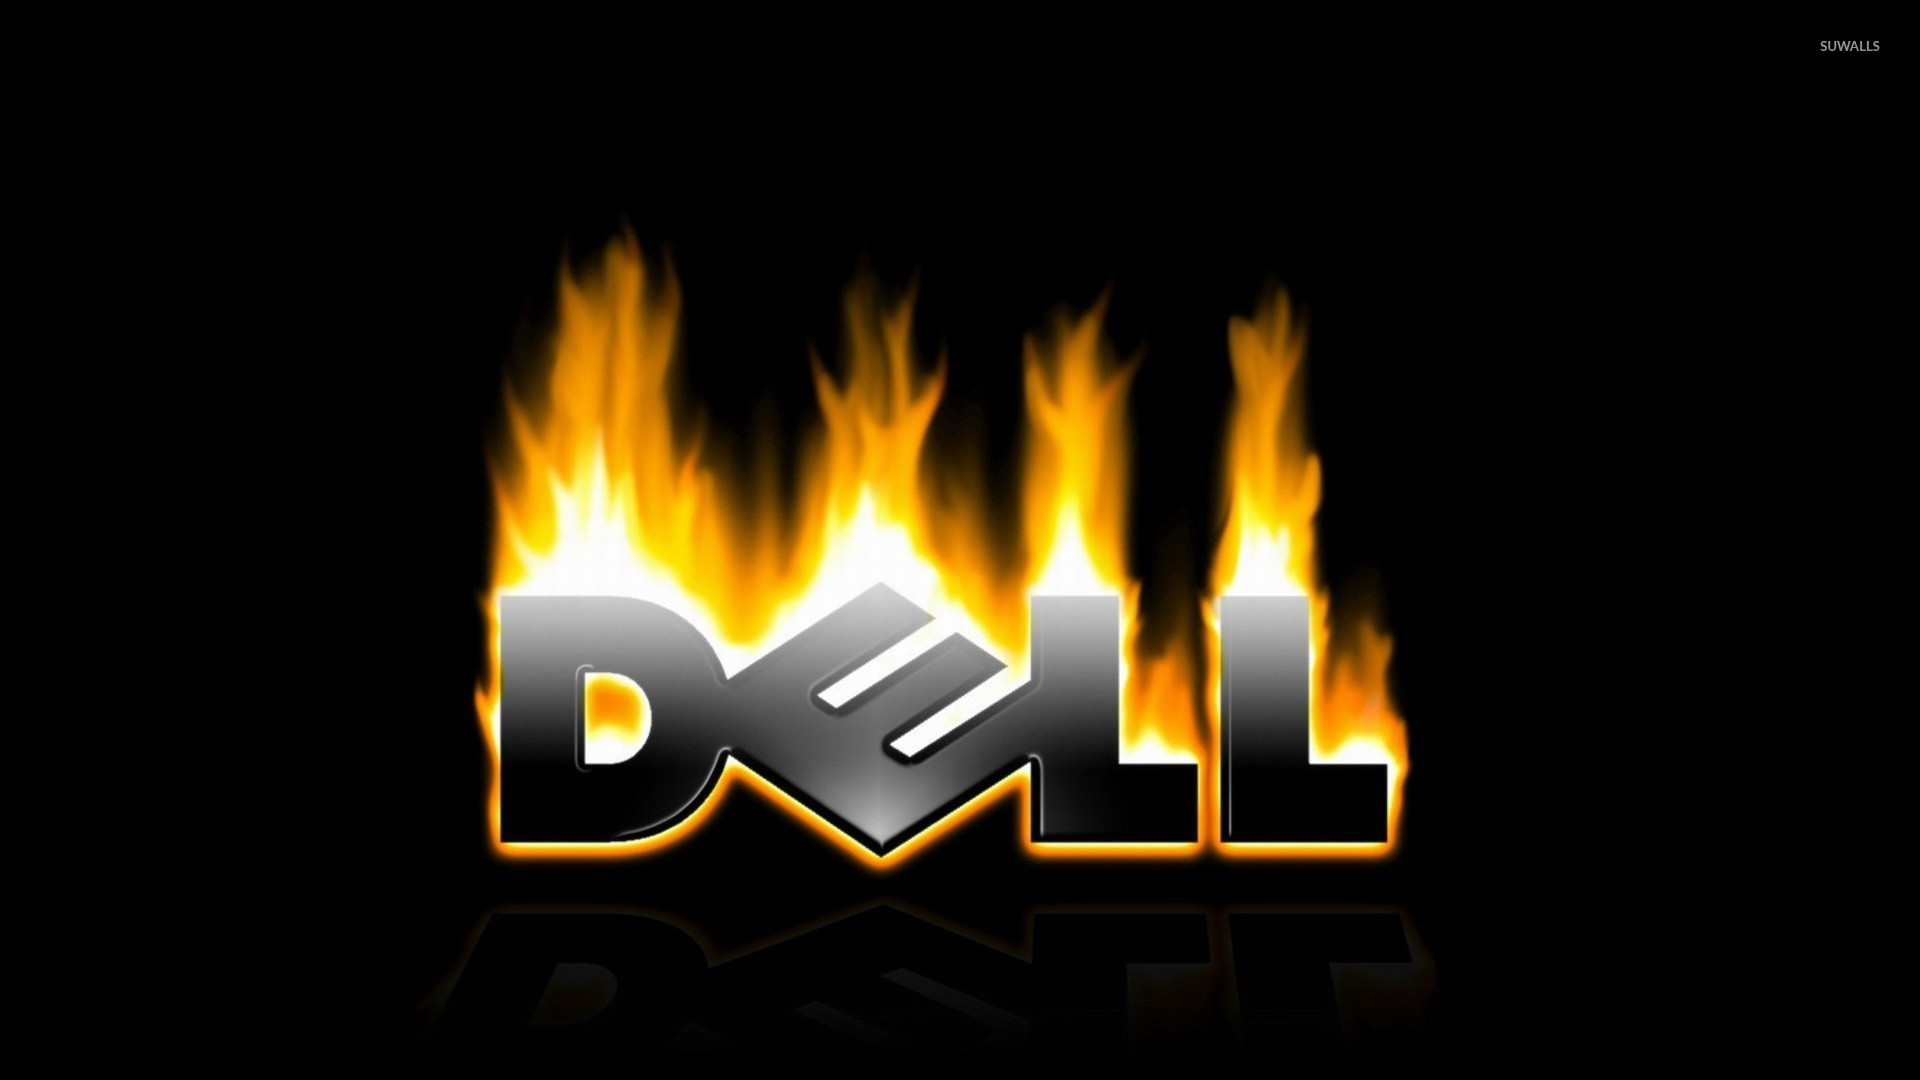 dell computers wallpaper logo - photo #22